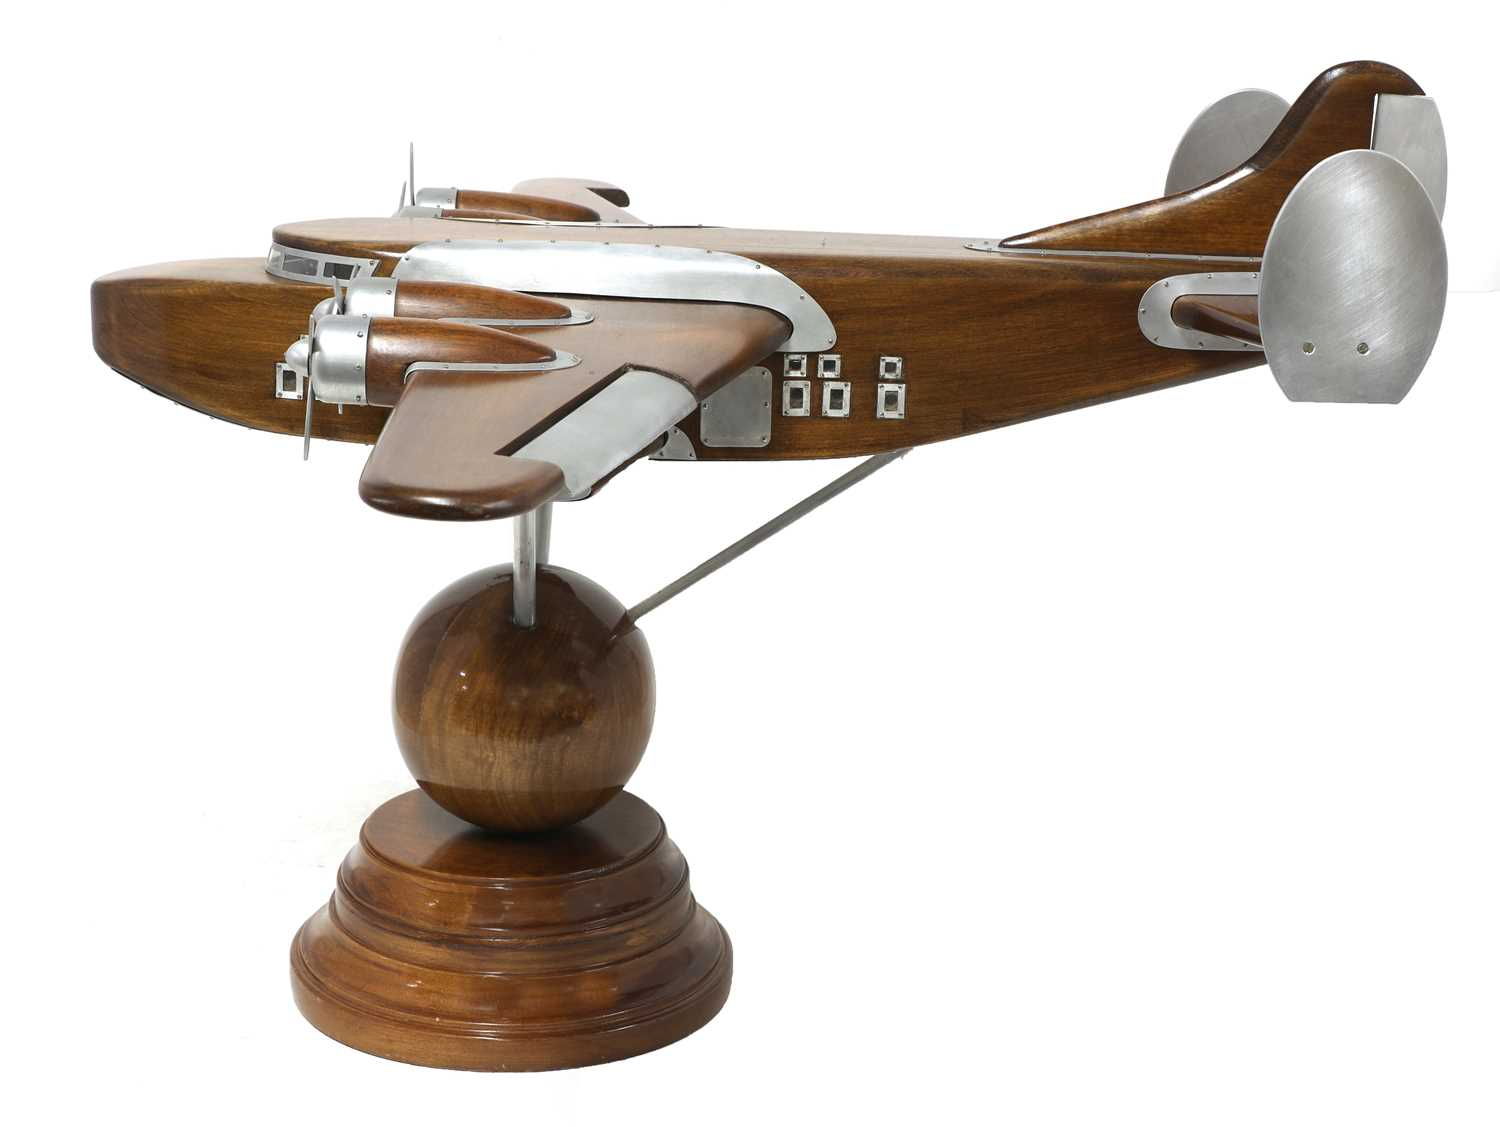 A model of a Pan American Boeing 314 Clipper floatplane, - Image 3 of 5